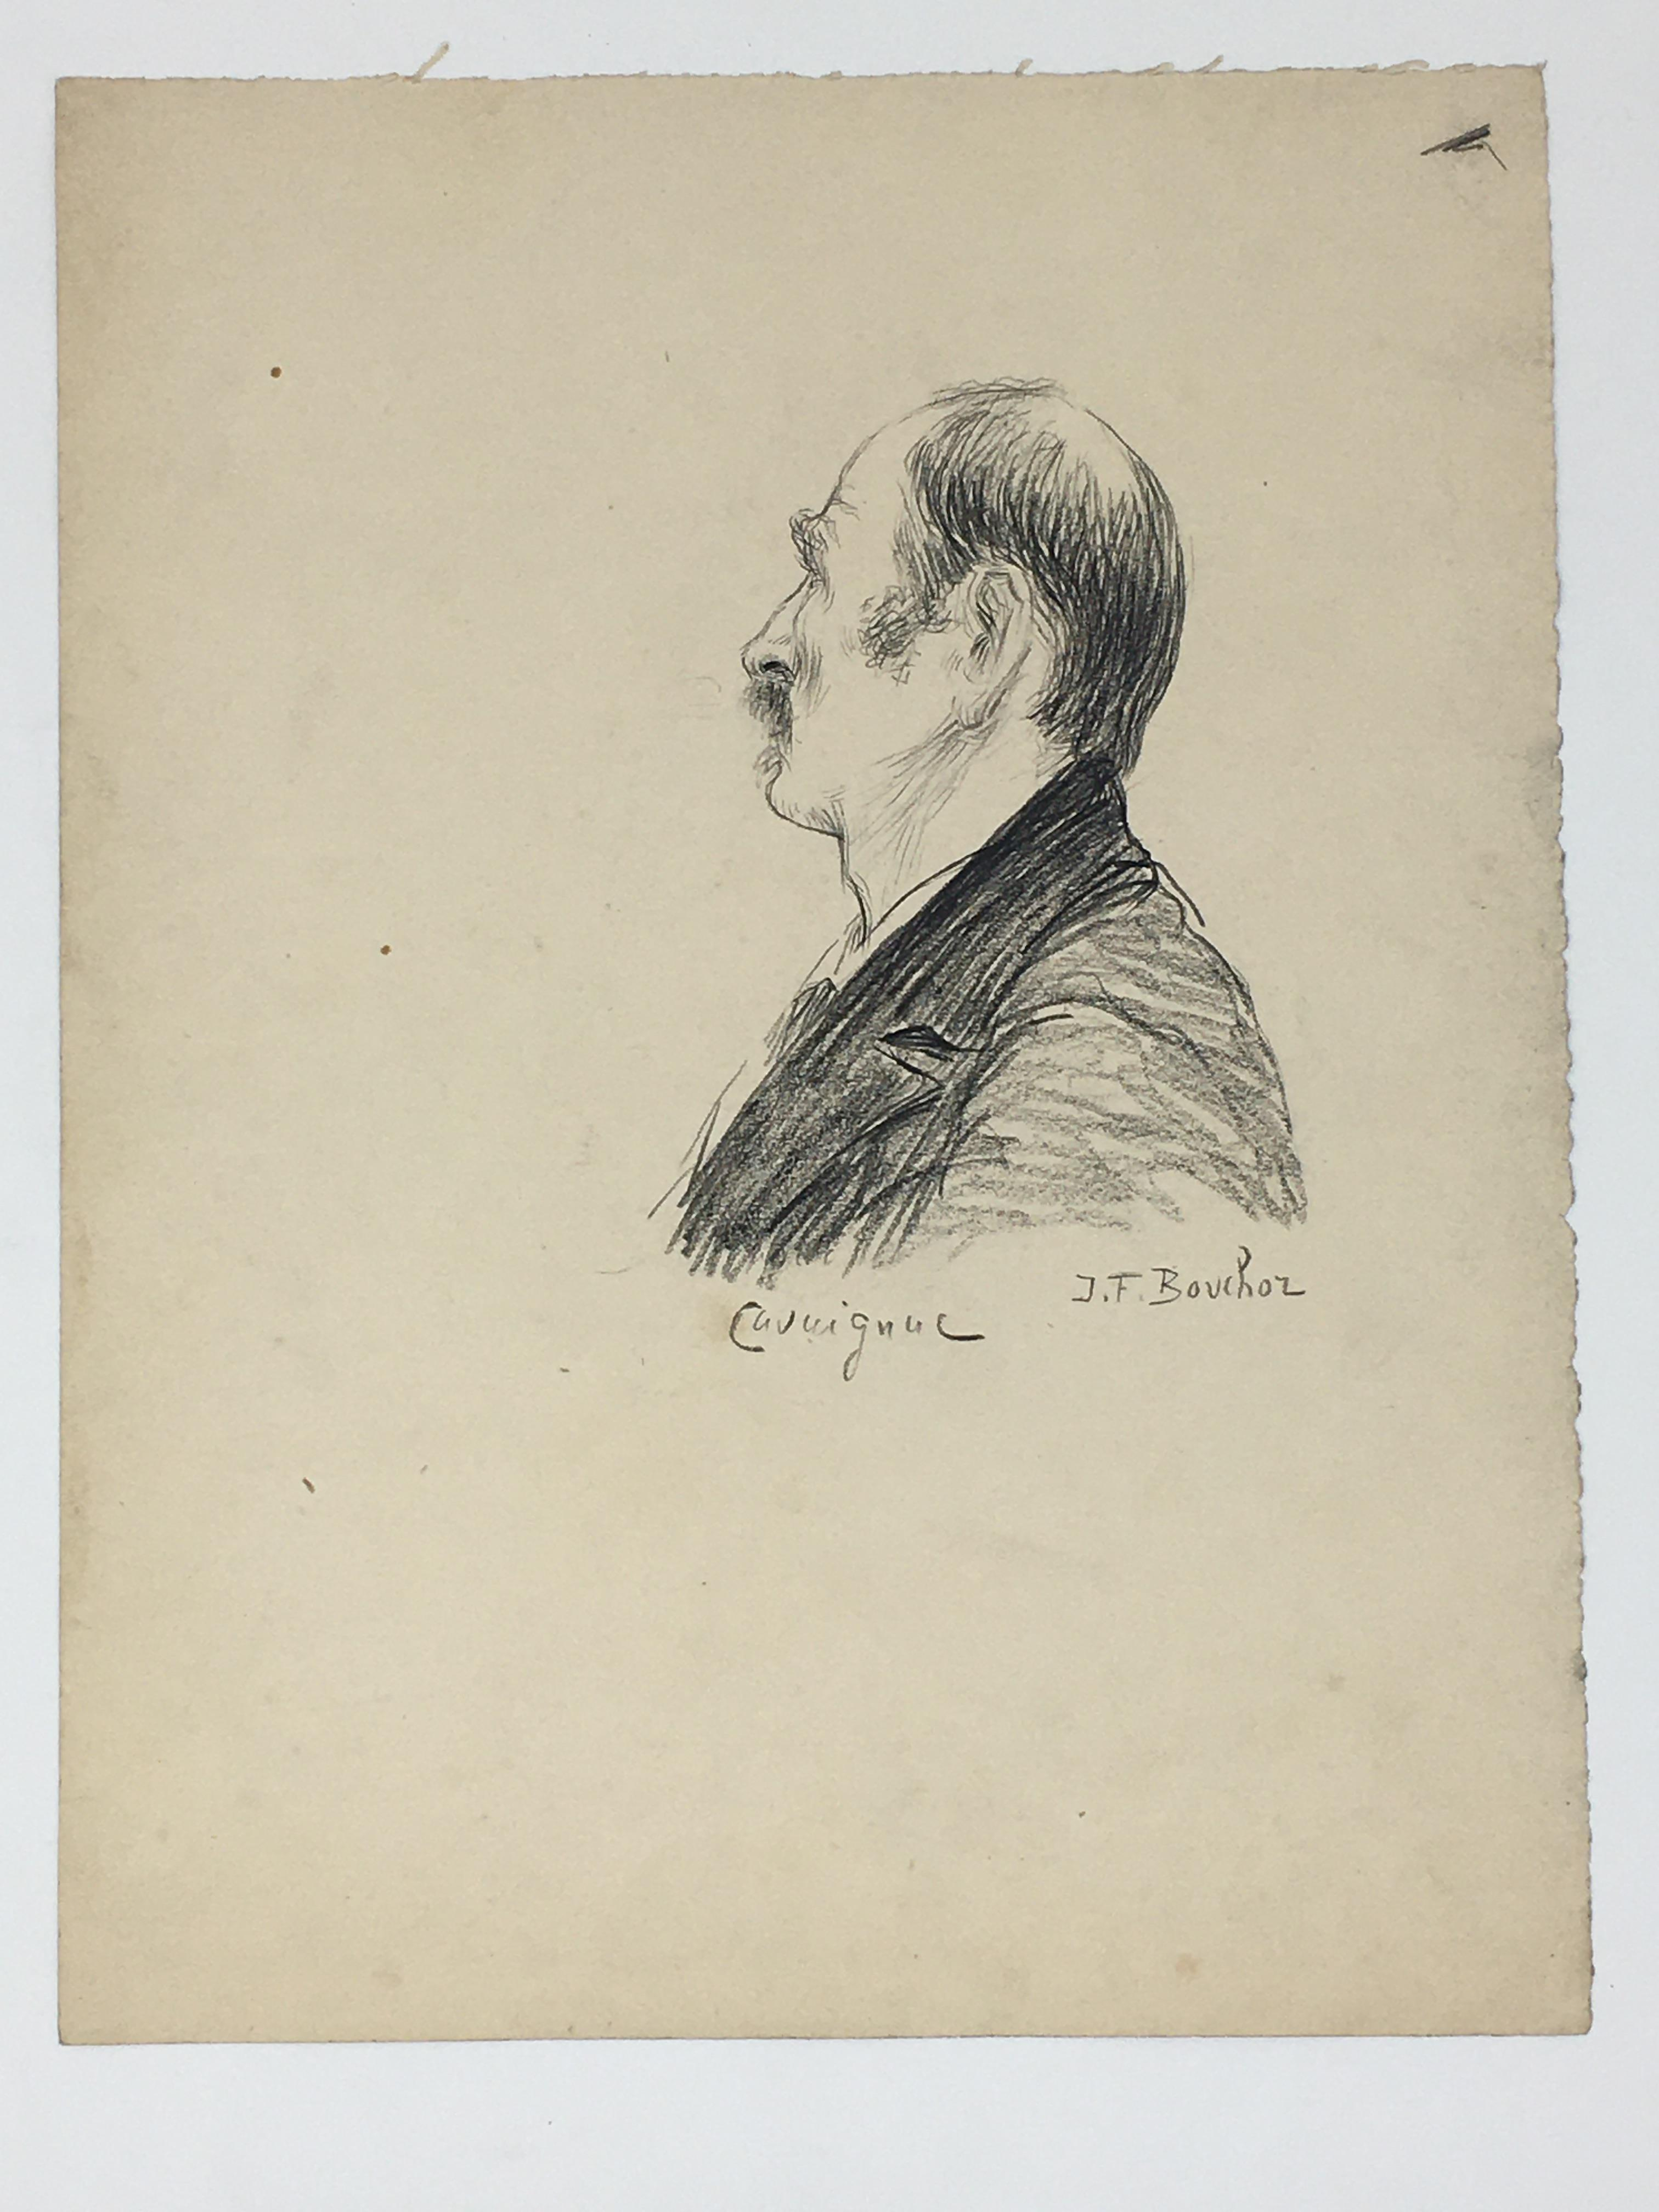 J'Accuse Newspaper, Emile Zola Quote, Signed Dreyfus Portrait, Rare Trial Drawings & Schwartzkoppen - Image 44 of 74